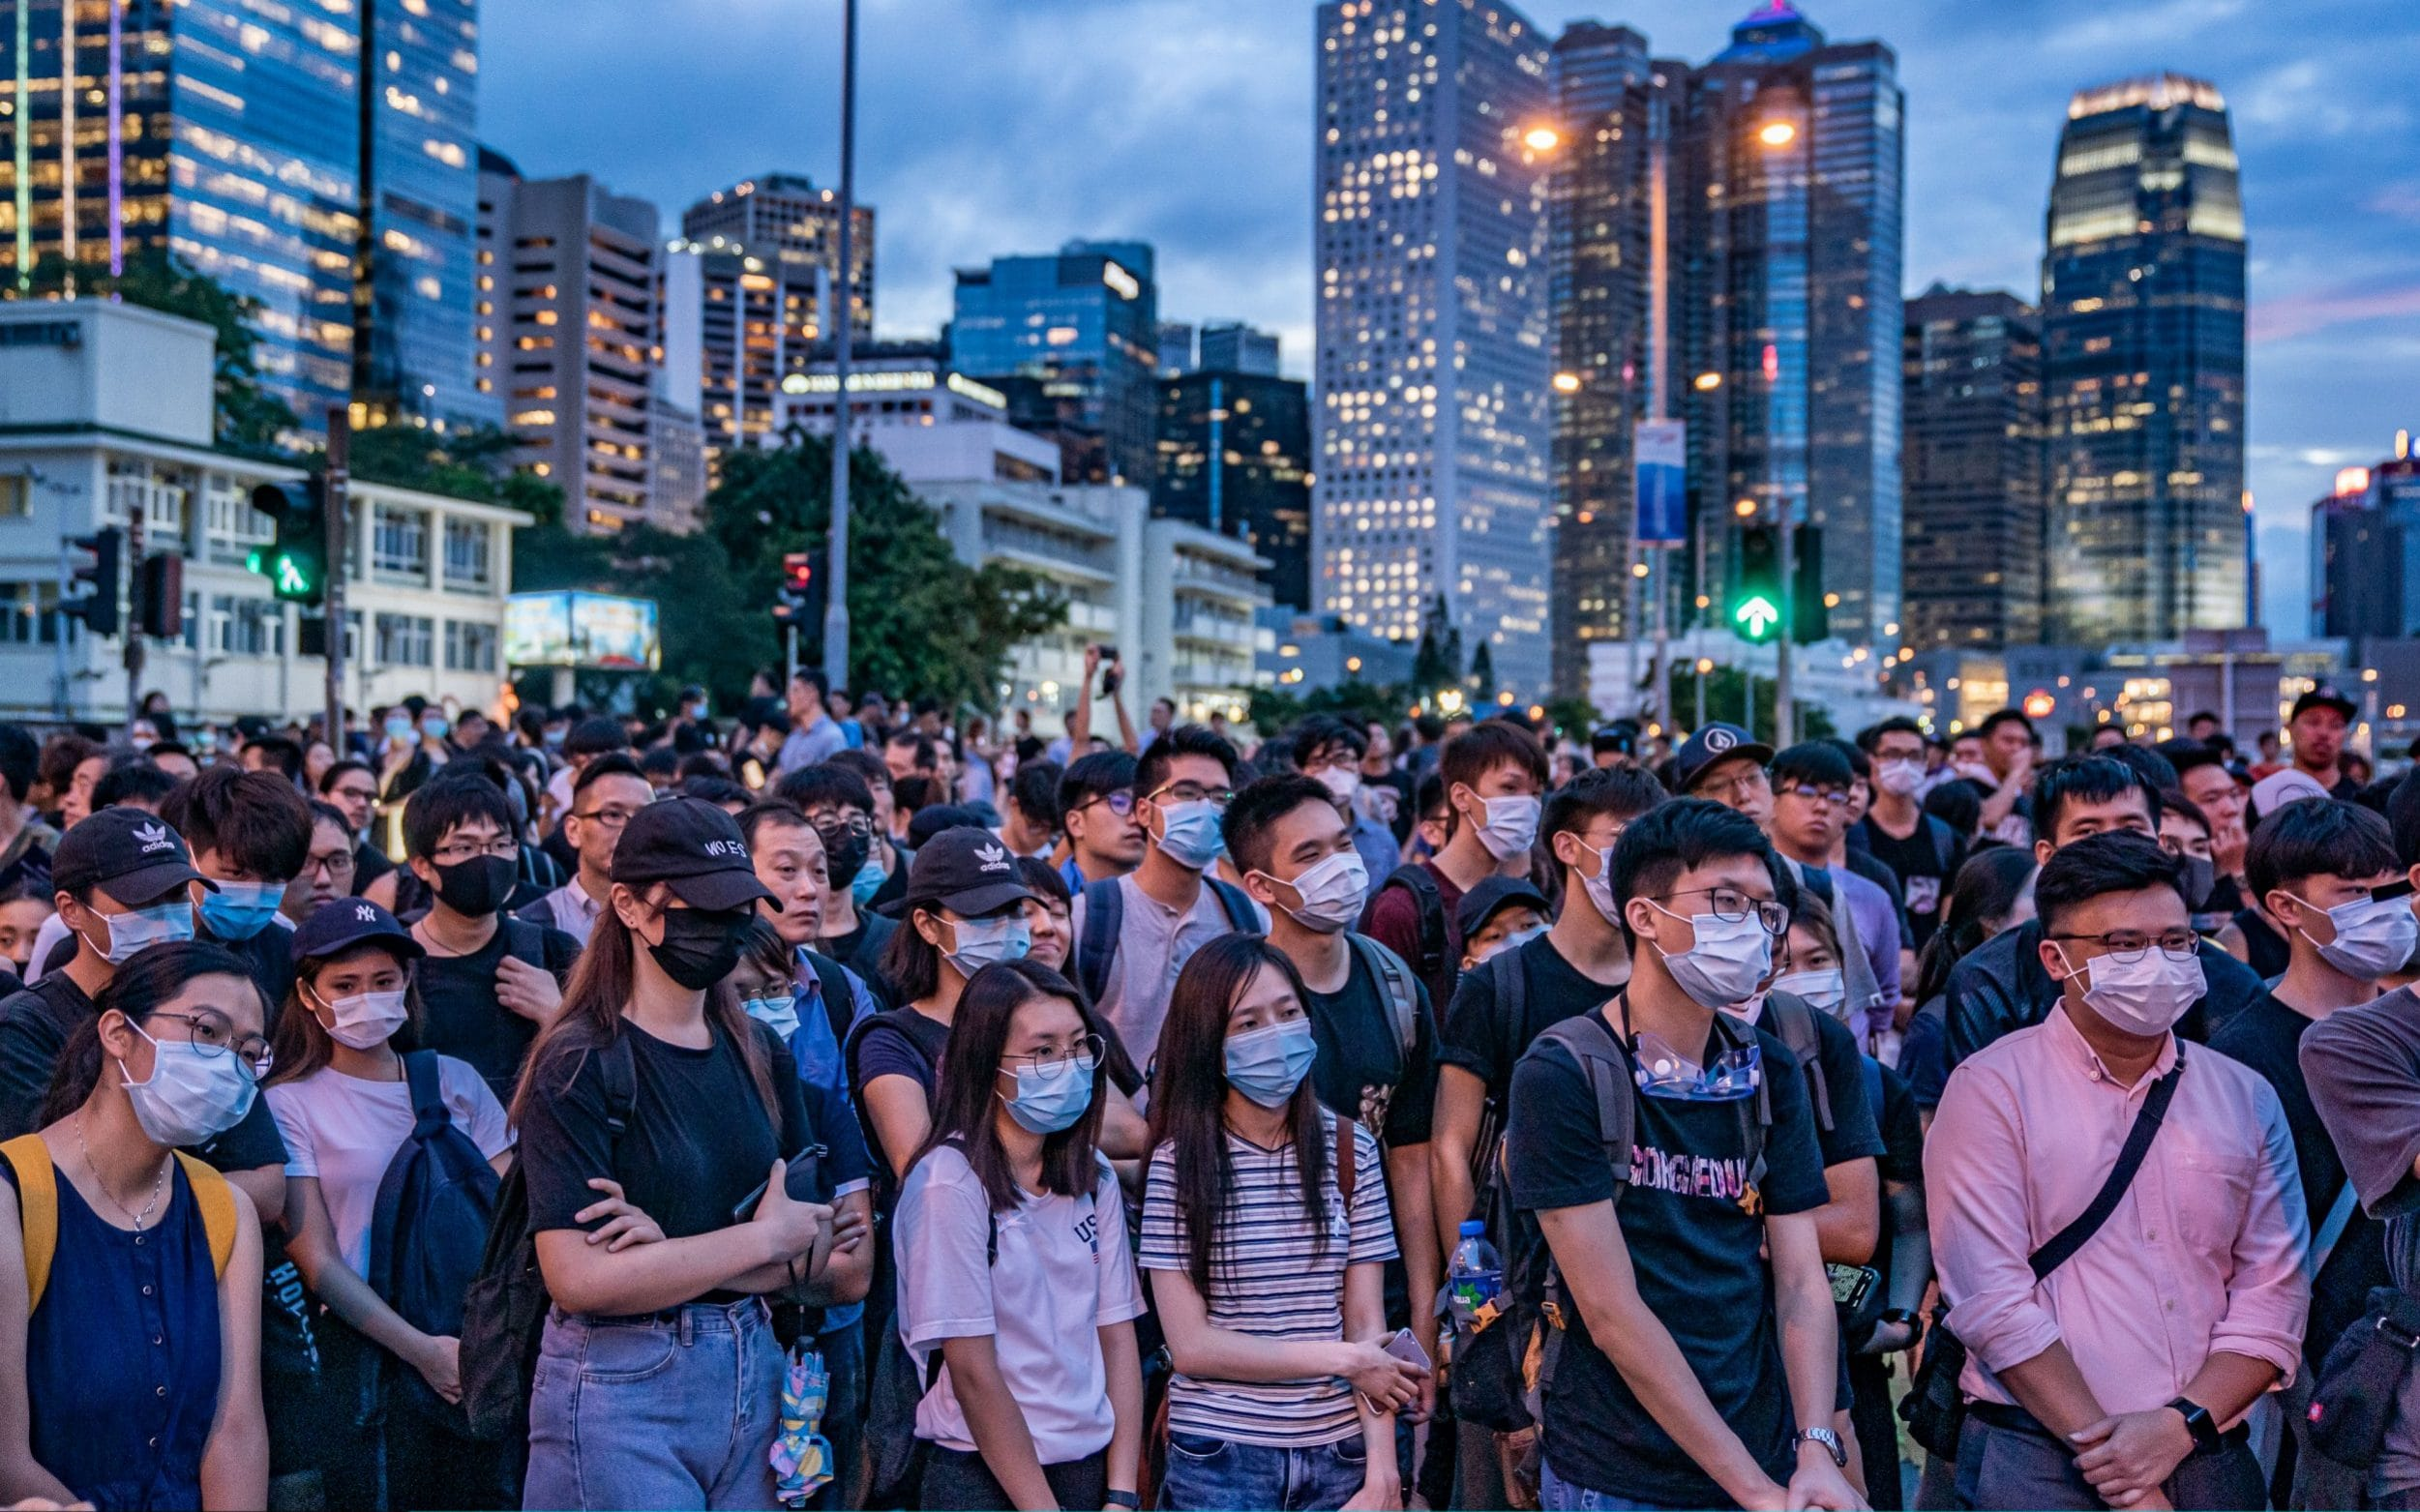 At least 70 arrested in Hong Kong after storming of parliament